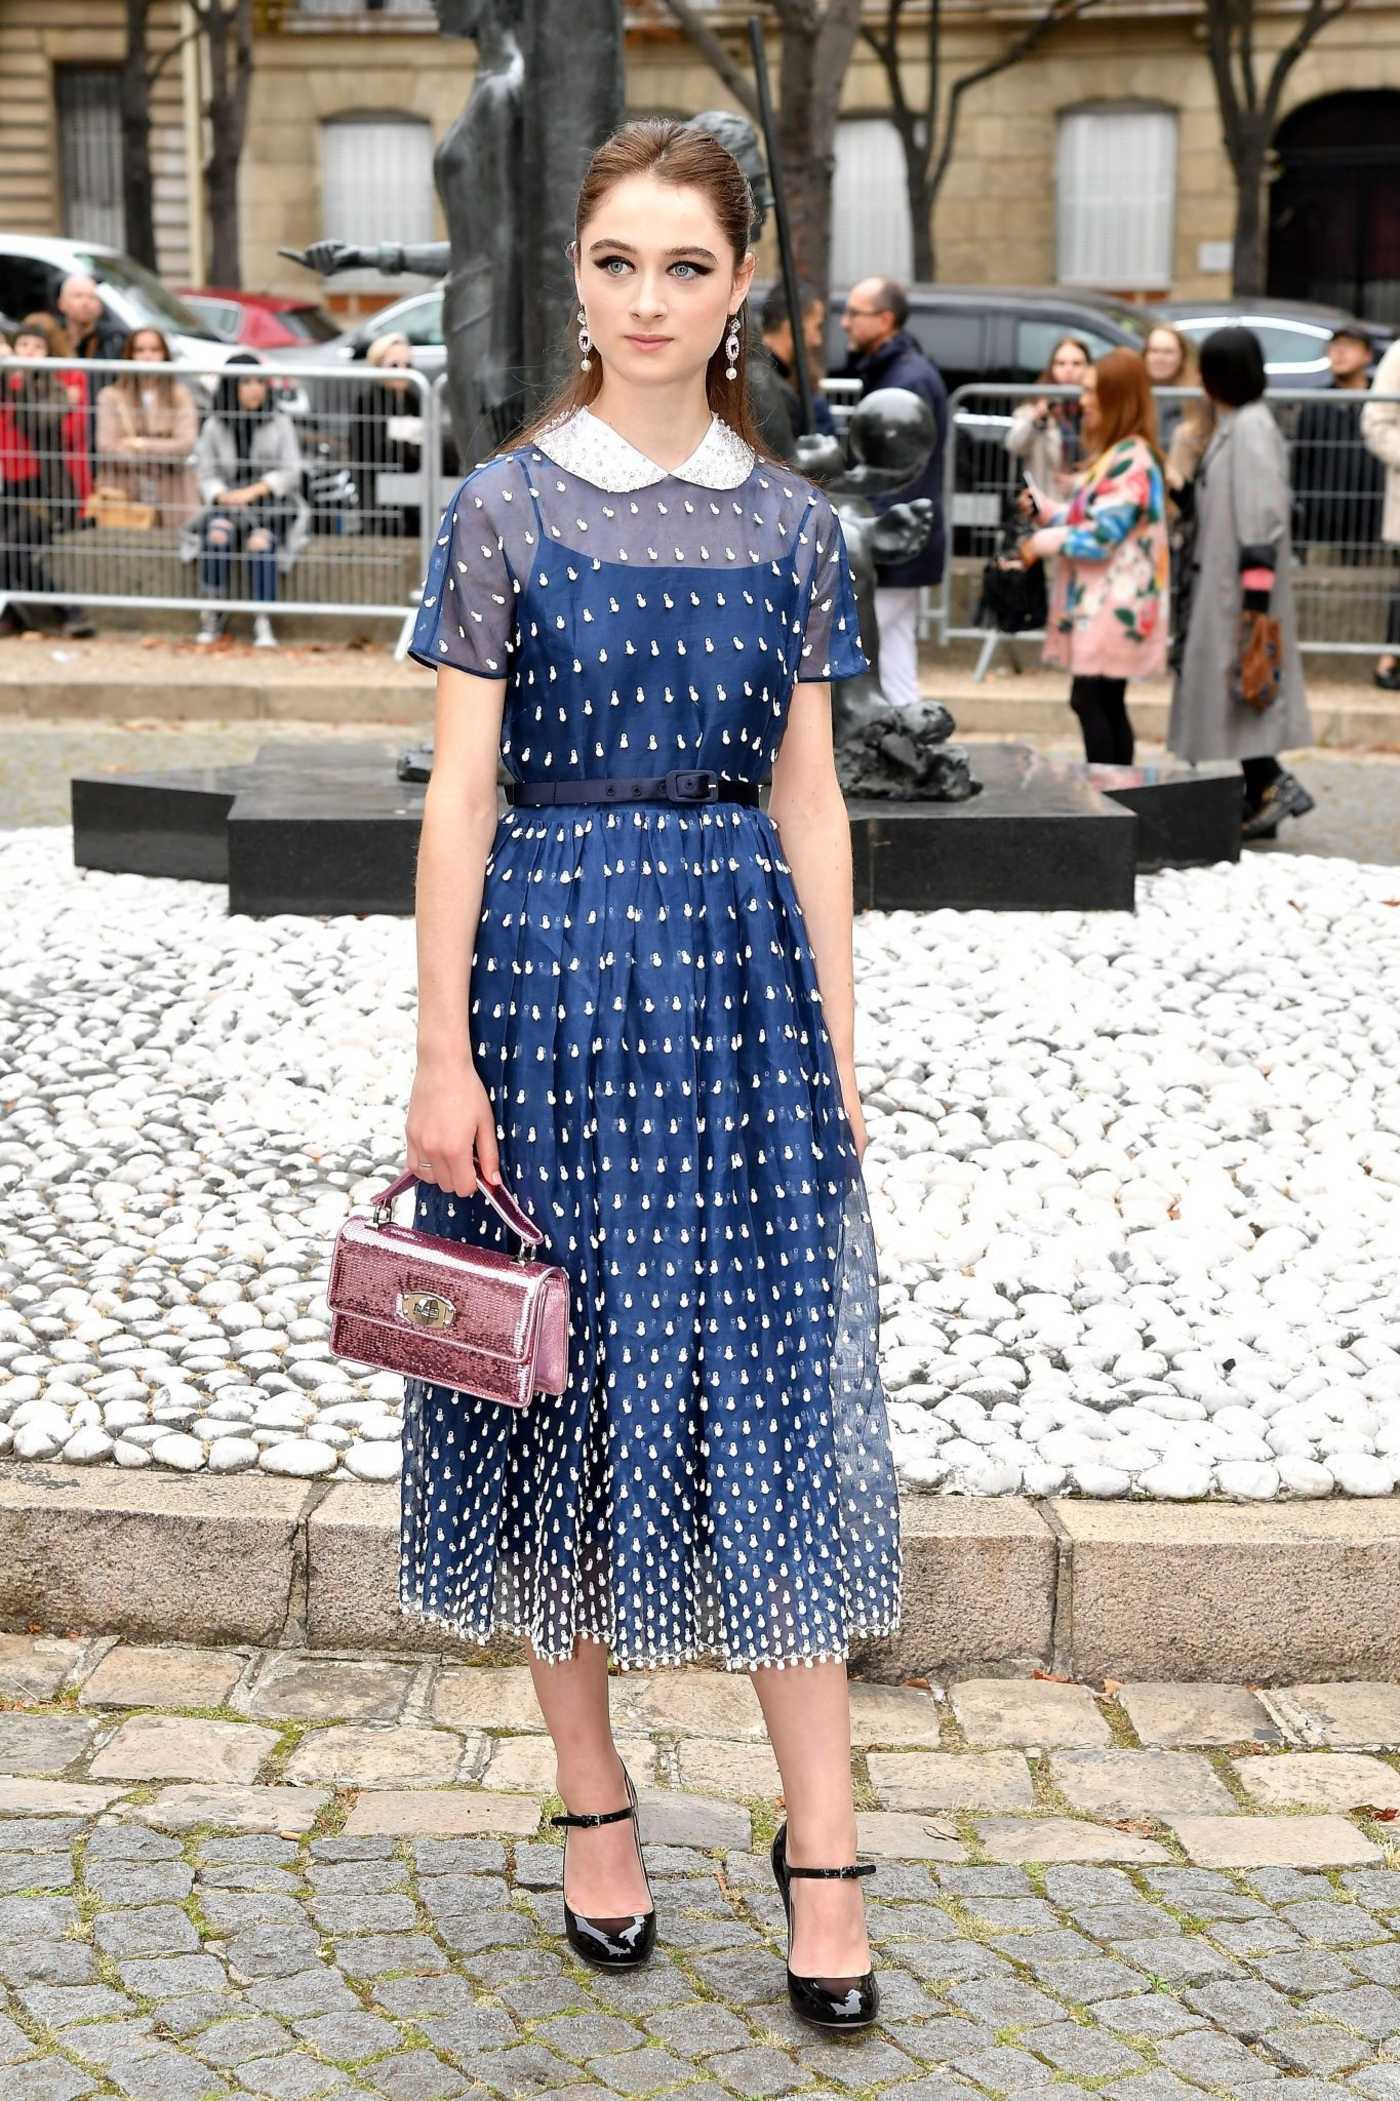 Raffey Cassidy Attends the Miu Miu Show During the Paris Fashion Week in Paris 10/02/2018